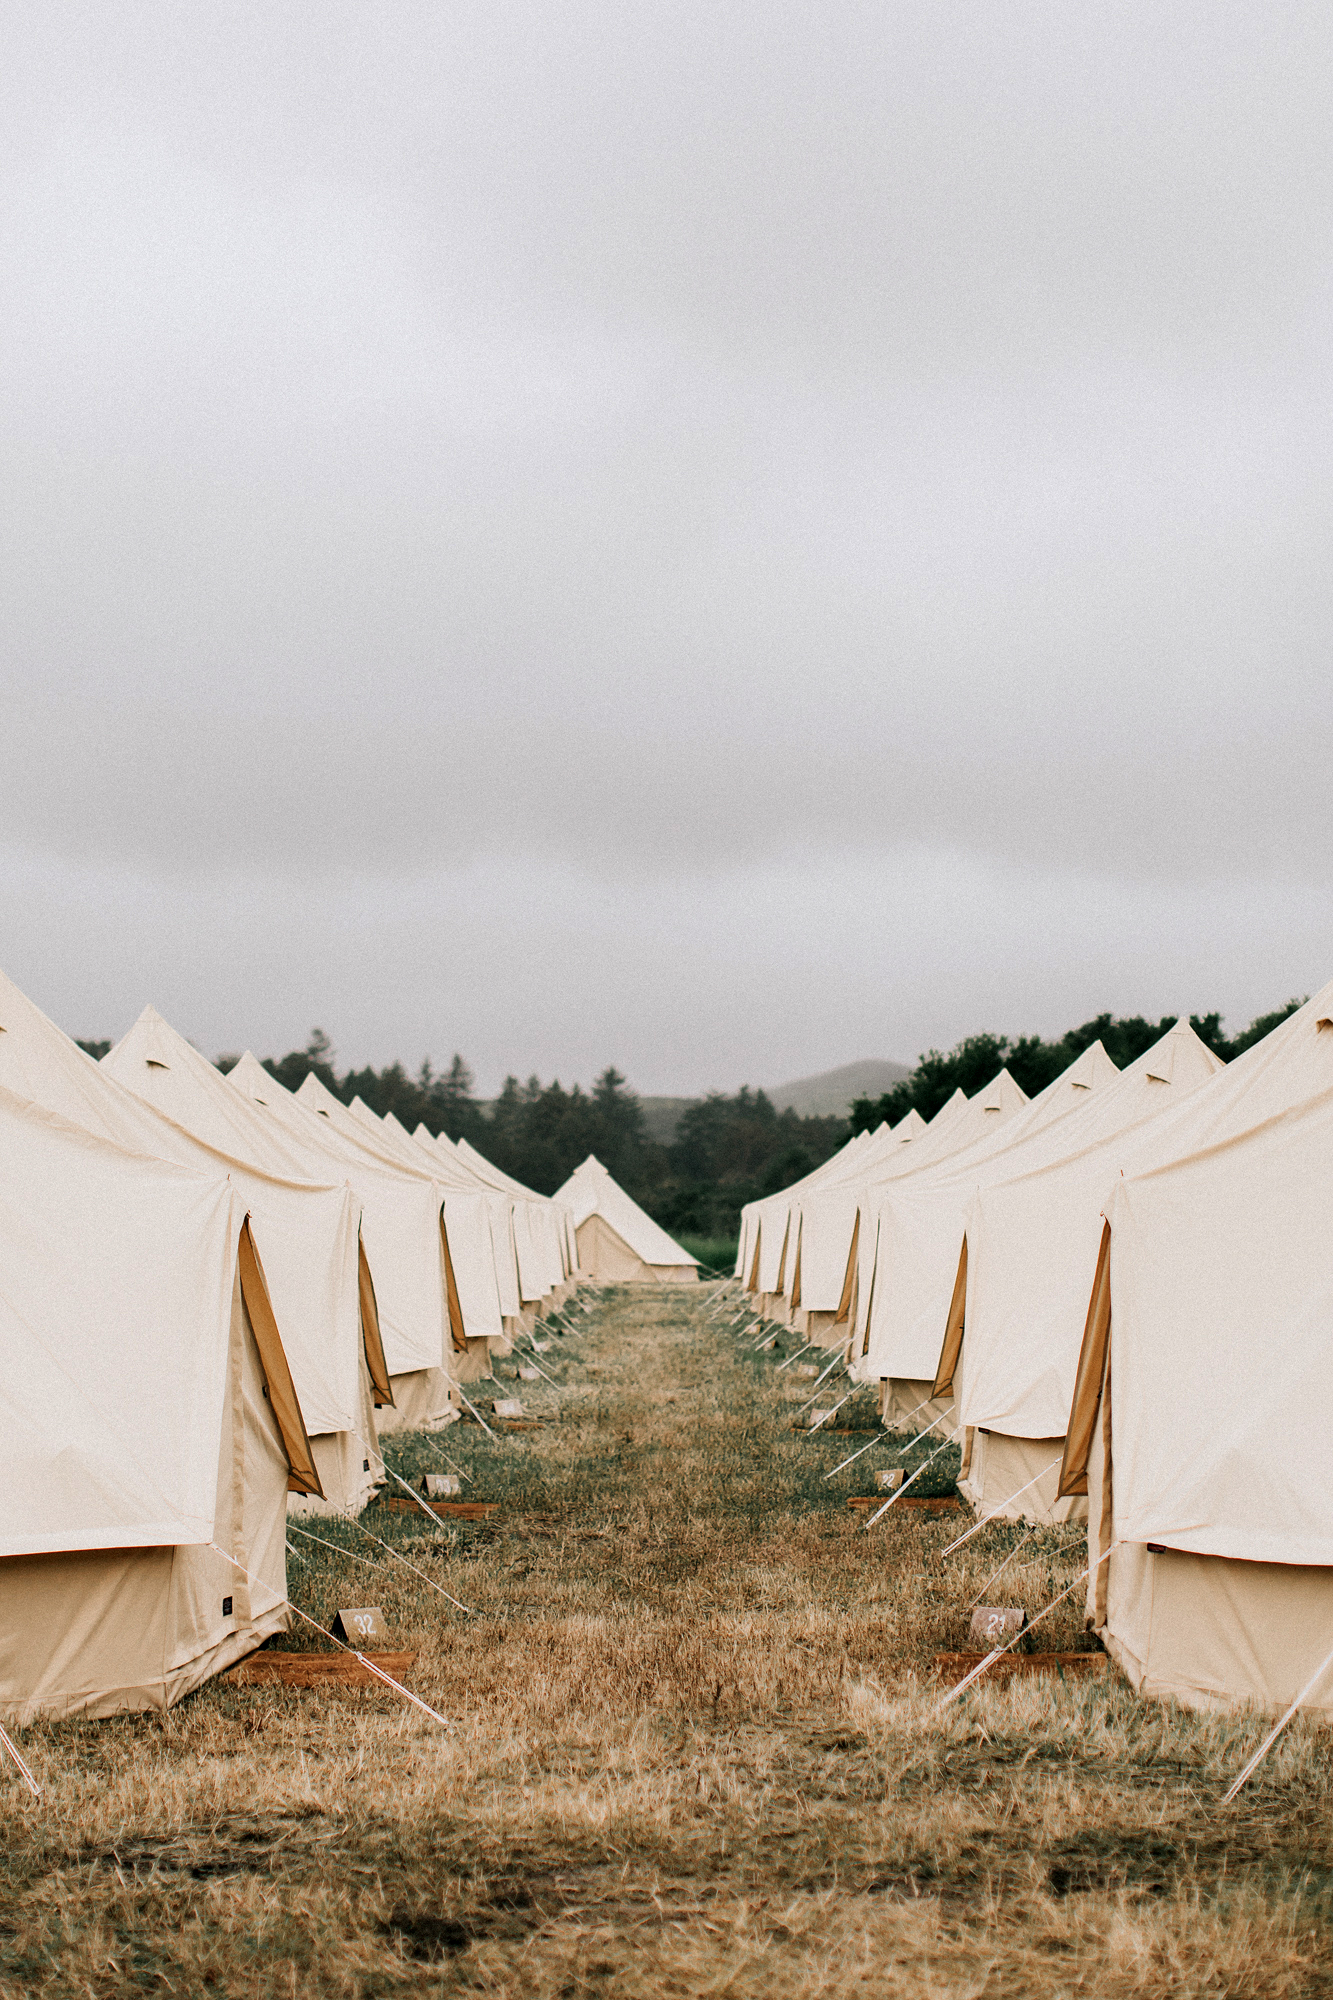 zai phil camping wedding tents rows outdoors